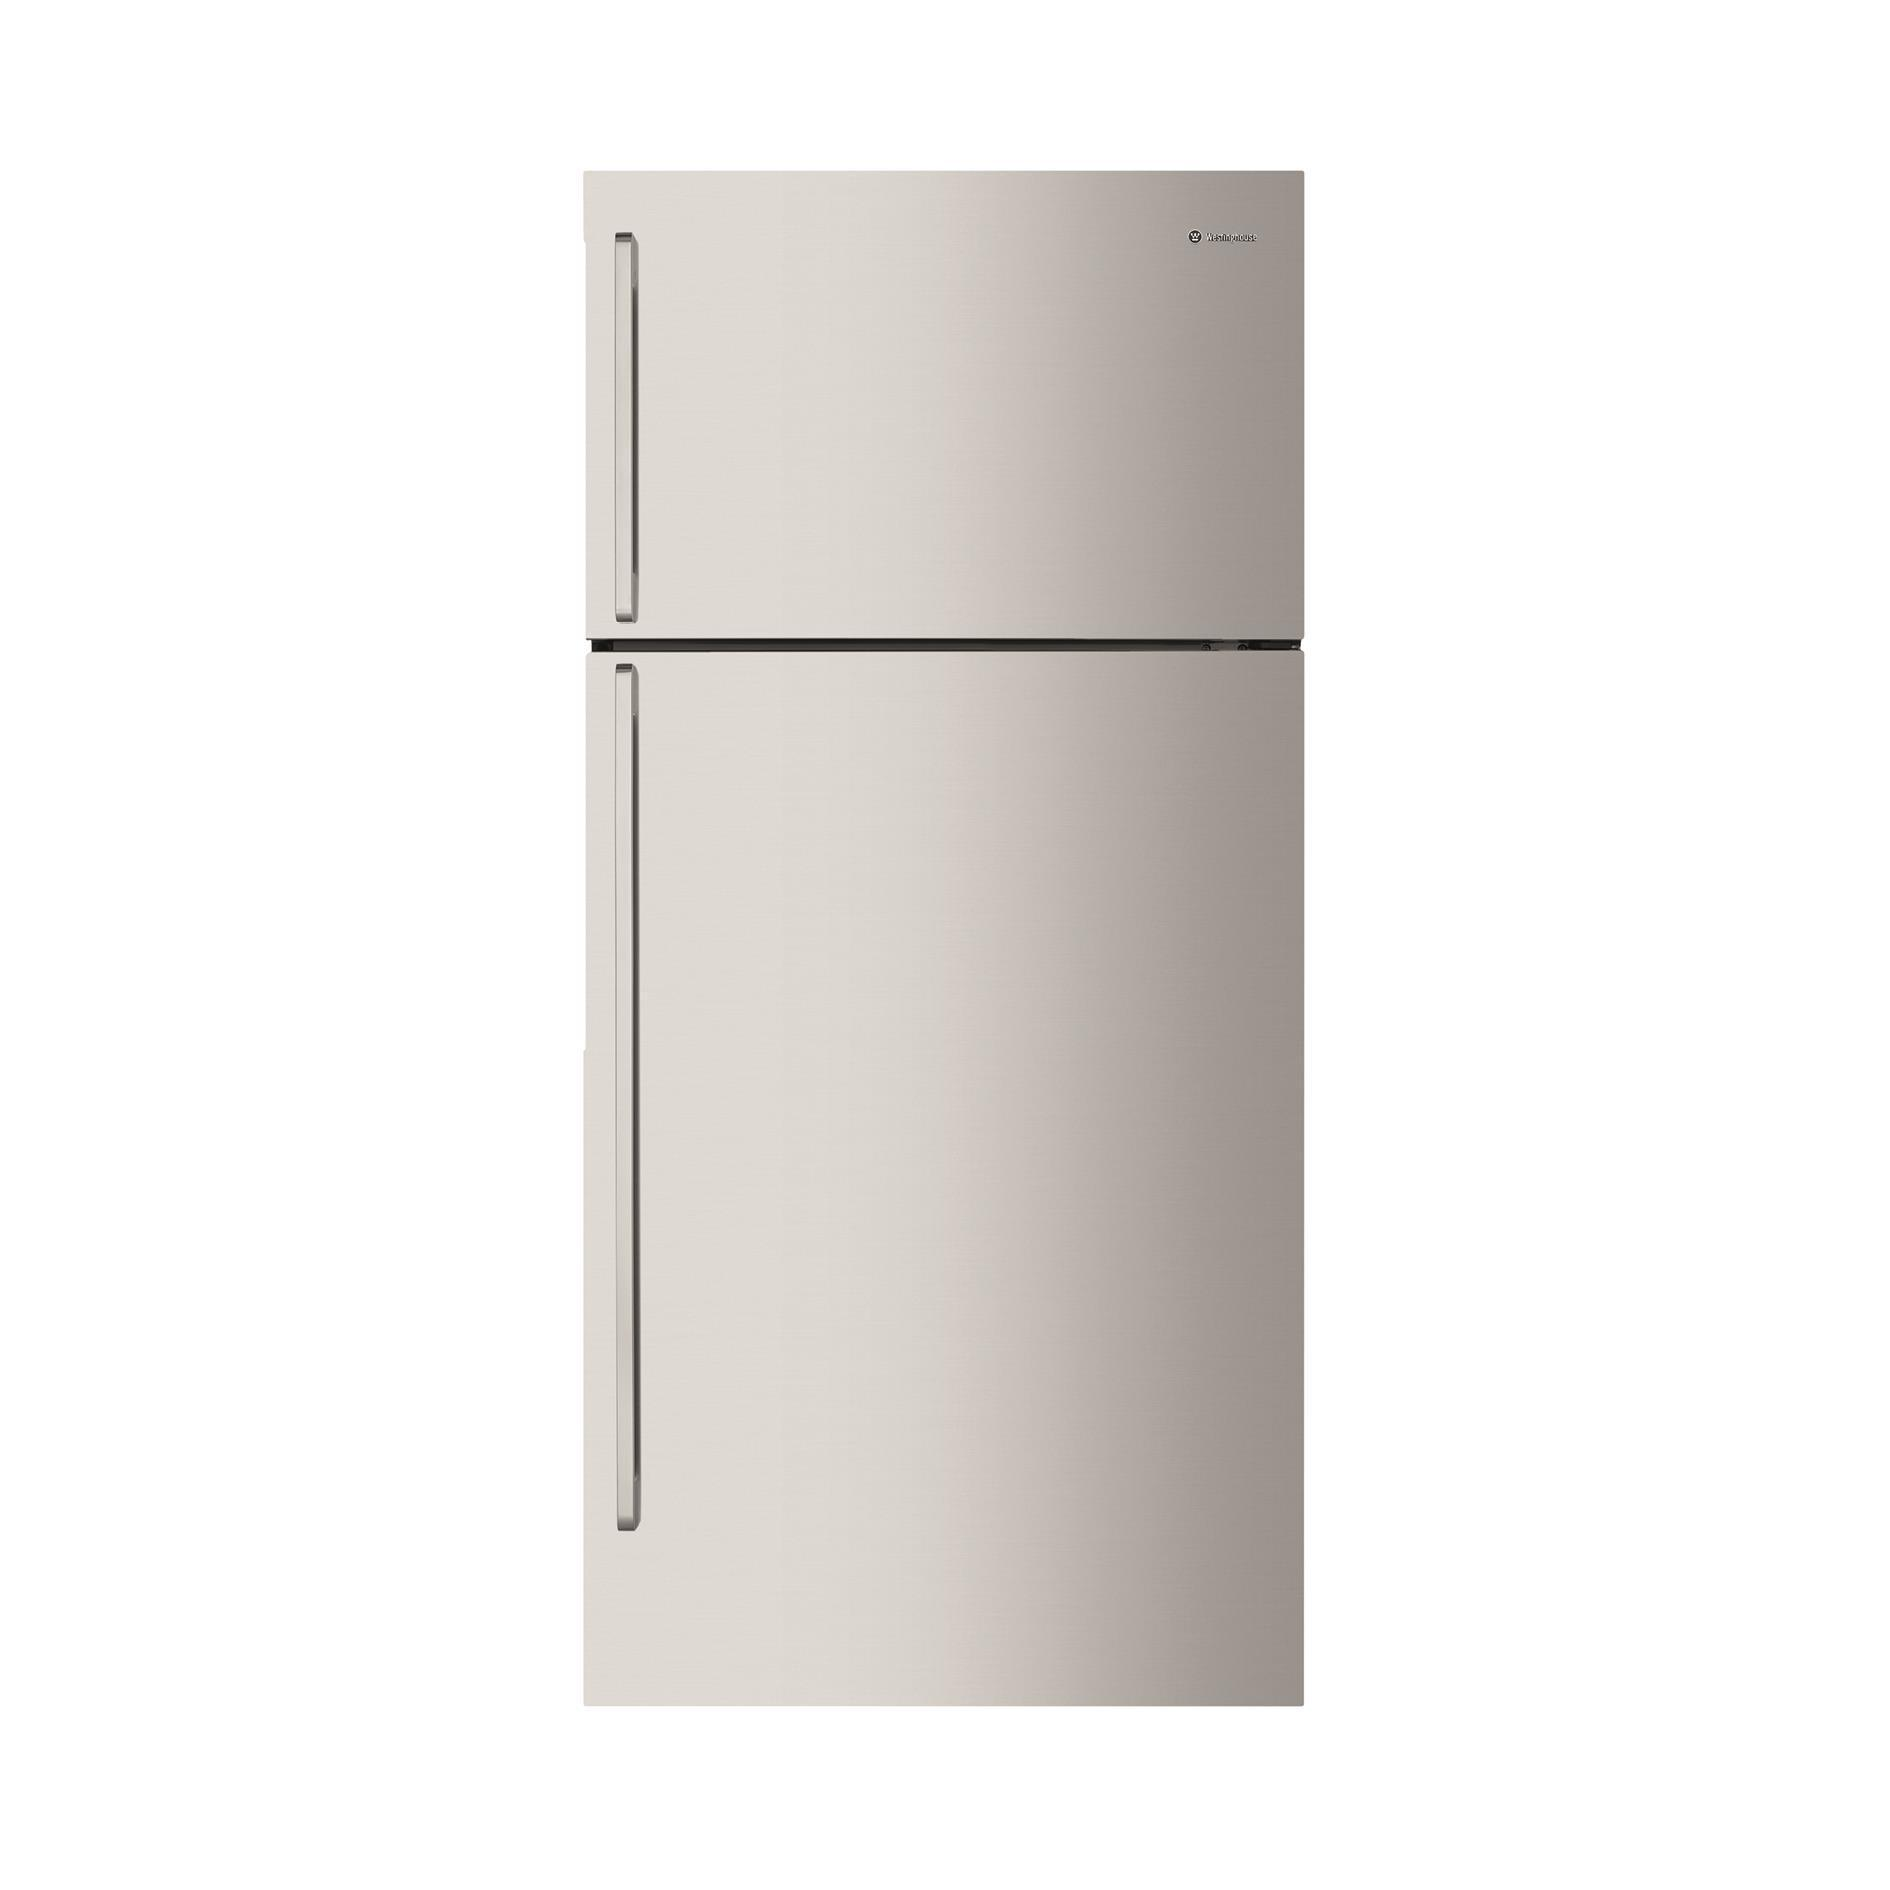 Westinghouse WTB5404SB 536L Top Mount Fridge (S/Steel) [Right]